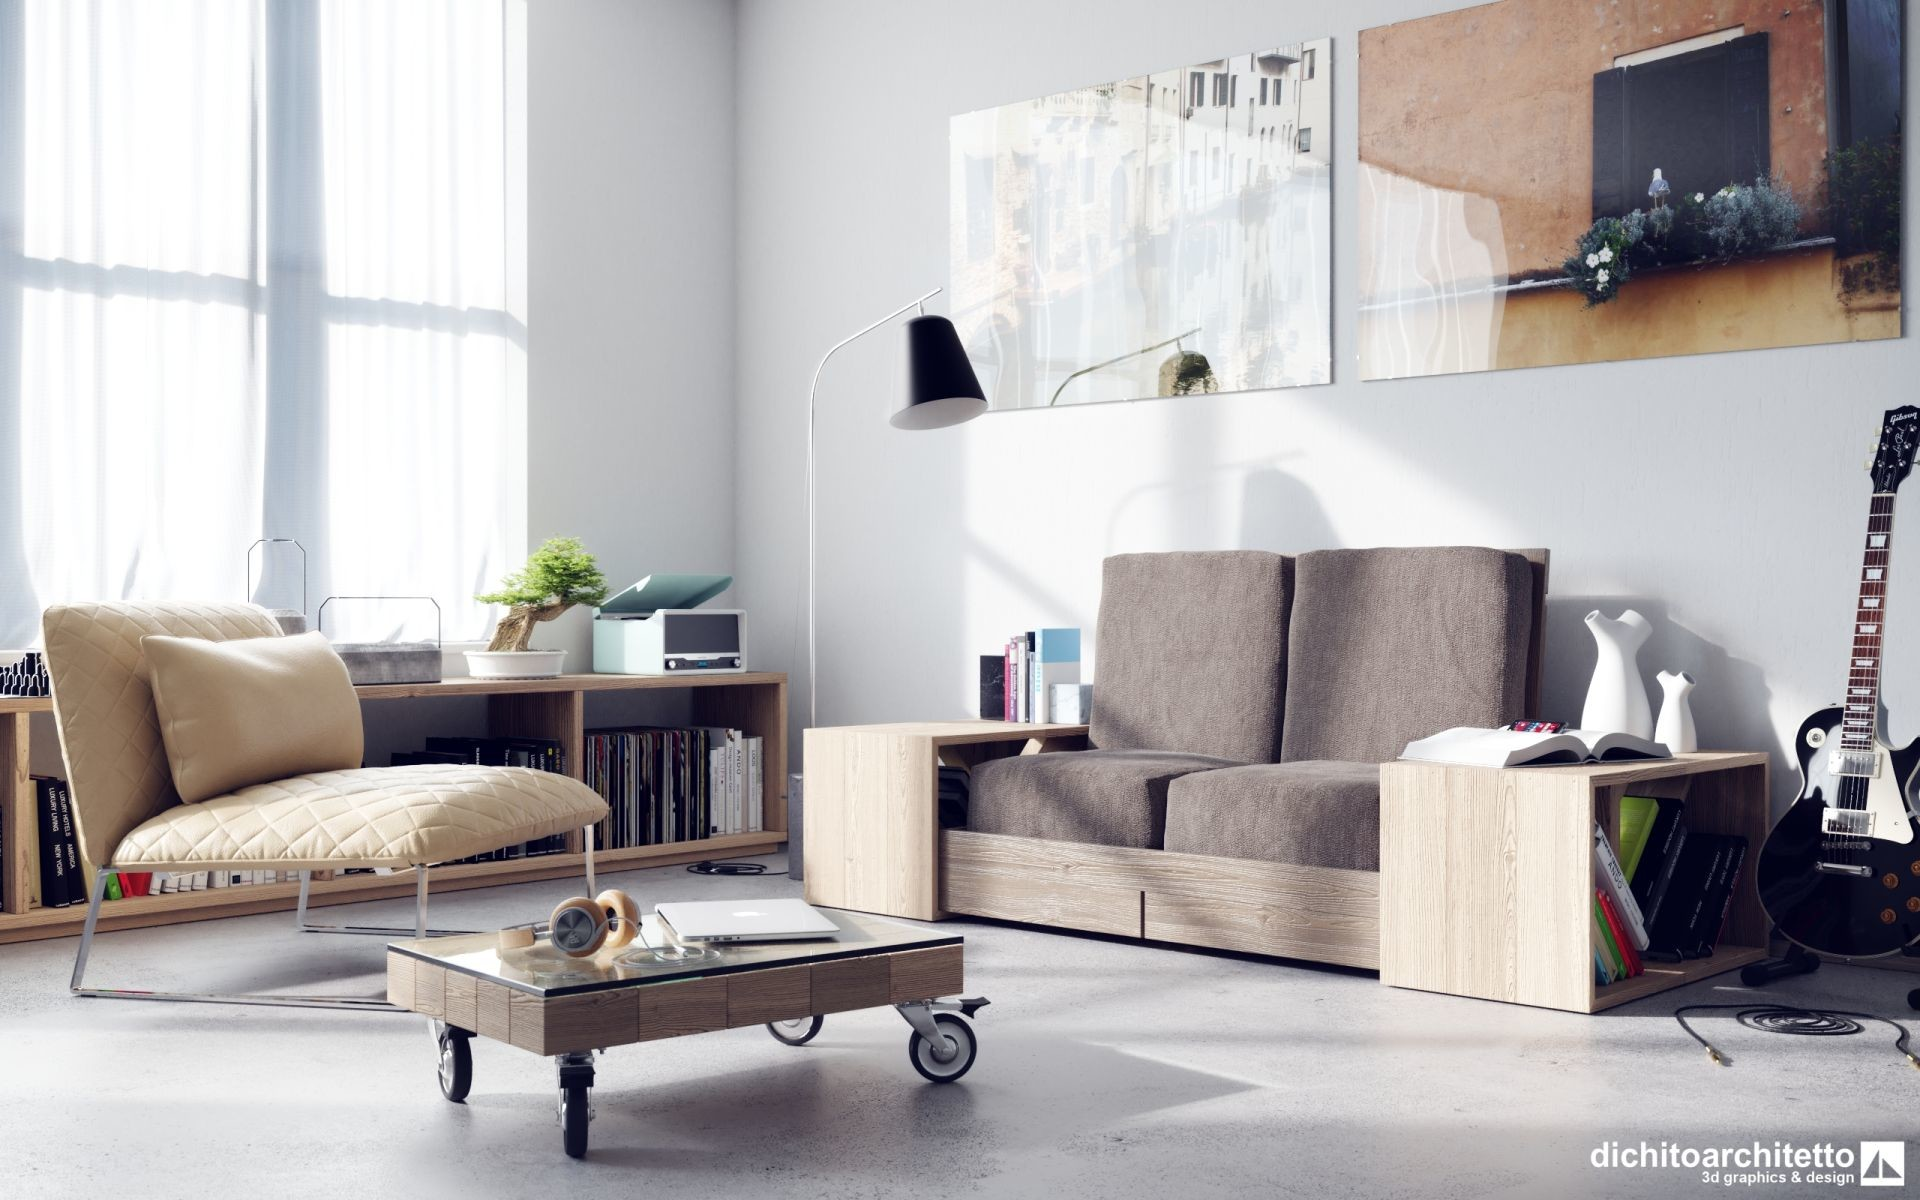 Viceversa Sofa by  Piero di Chito , using the  Fabric  and  Wood  textures.